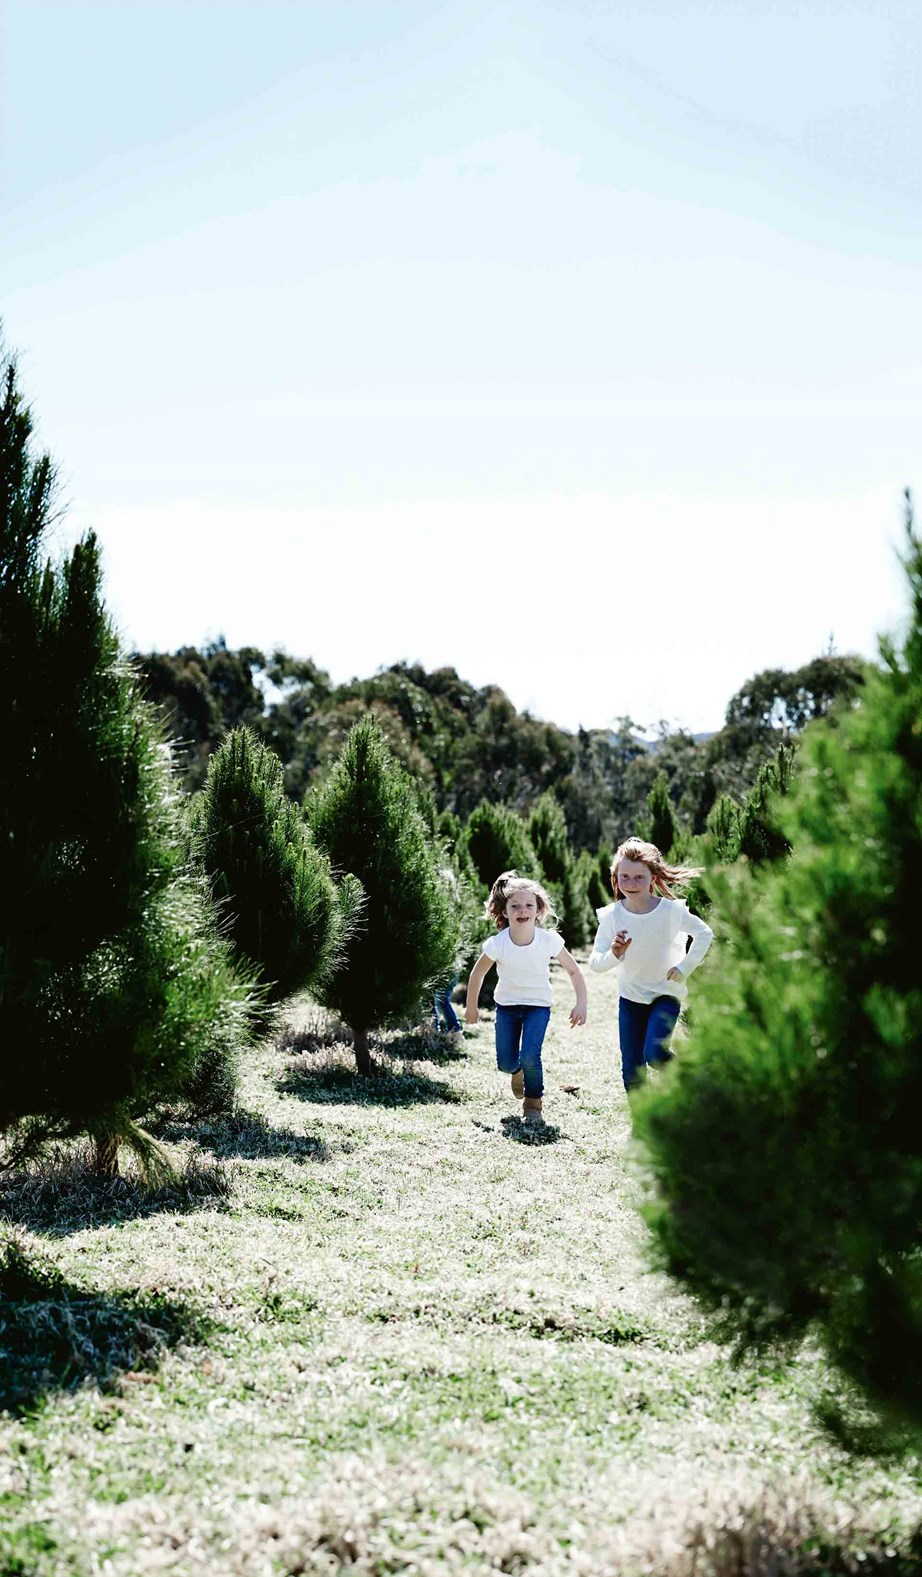 "**Radiata pine** (*Pinus radiata*): In their natural environment, these trees can grow over 30 metres high, so keep them contained in a pot. They have many upward-pointing branches with long pine needles and have a wonderful pine scent. The owners of this [Christmas tree farm](https://www.homestolove.com.au/christmas-tree-farm-near-sydney-13622|target=""_blank"") grow around 35,000 Christmas trees (Pinus radiata) on their 485-hectare farm at Wingello in the NSW Southern Highlands."